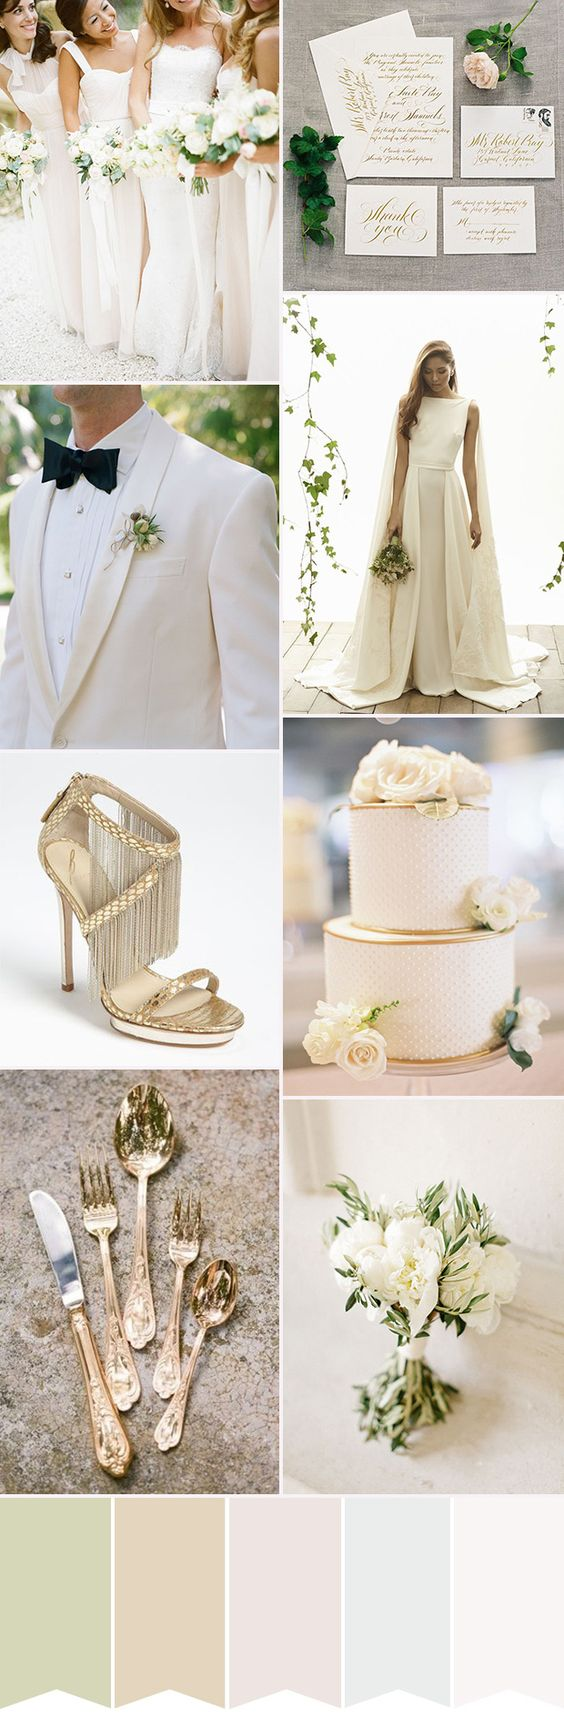 Glam White Wedding Colour Palette | See more wedding inspiration on www.onefabday.com